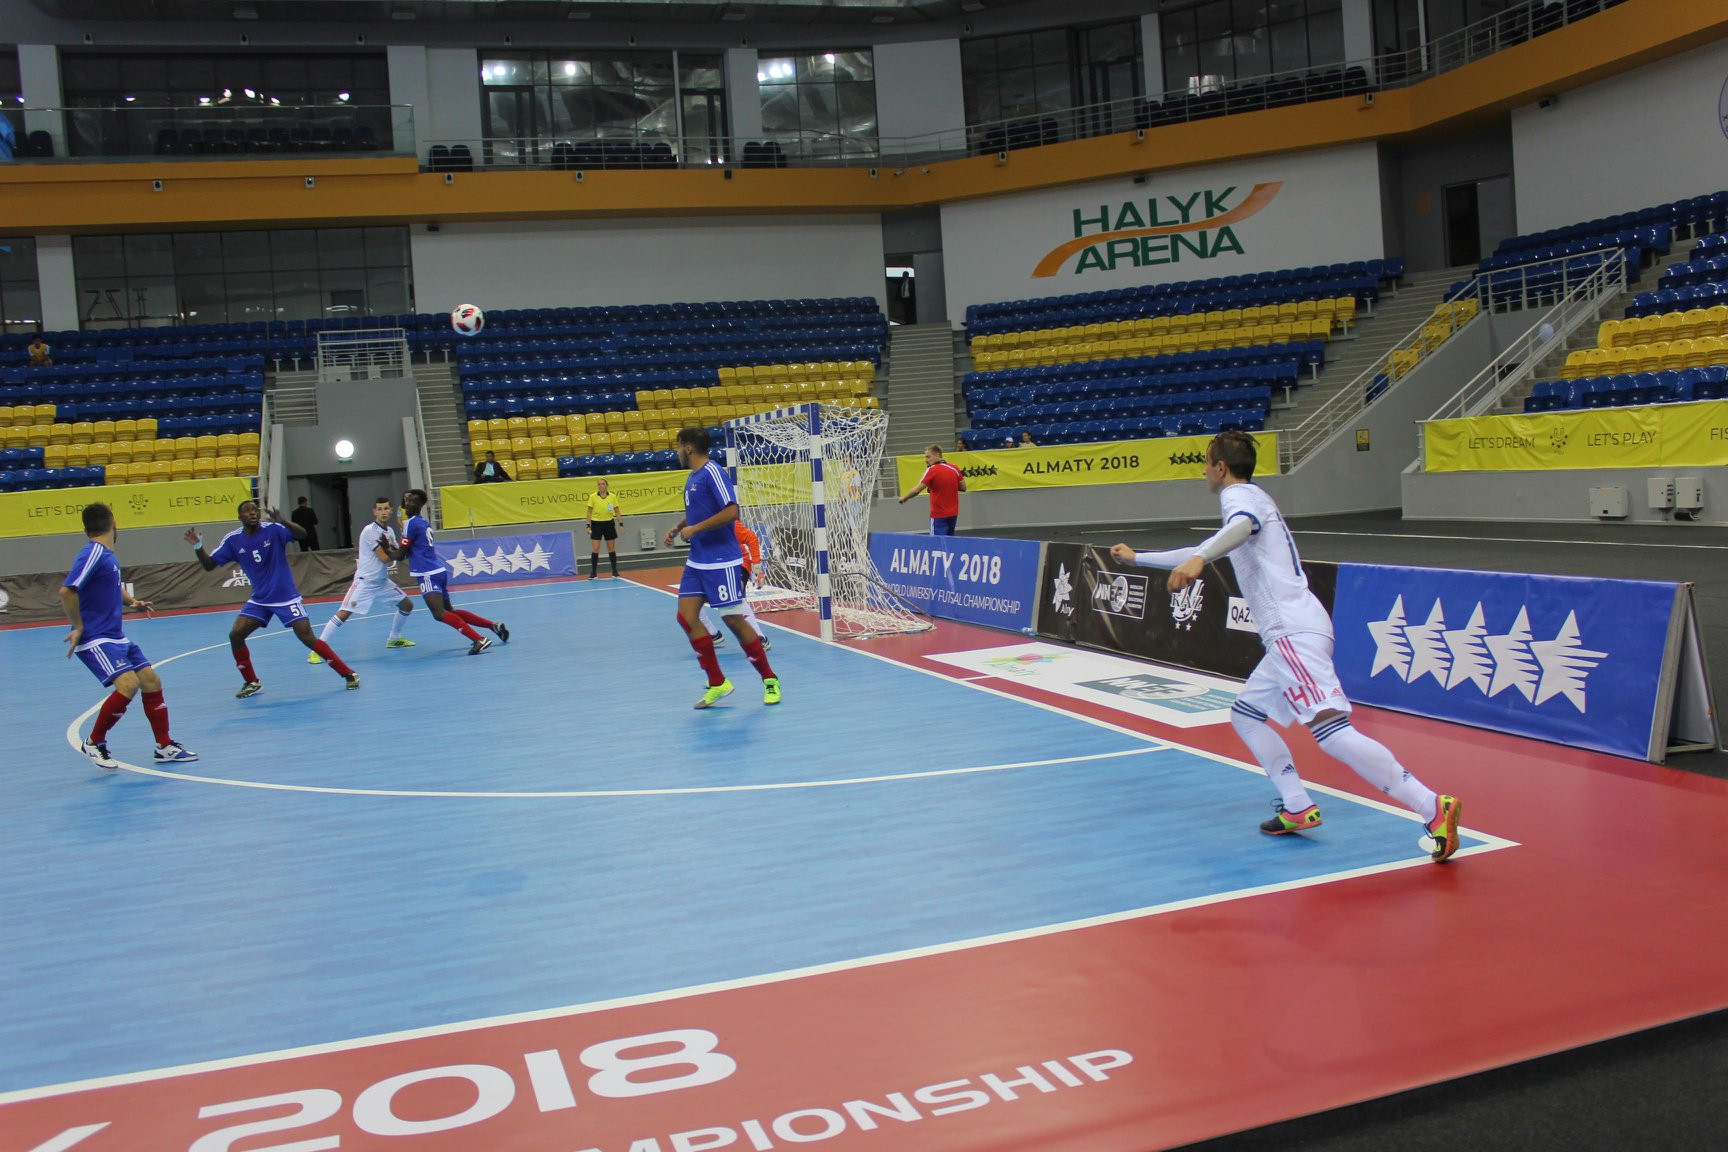 Russia also booked their place in the men's final at the event in Almaty ©Facebook